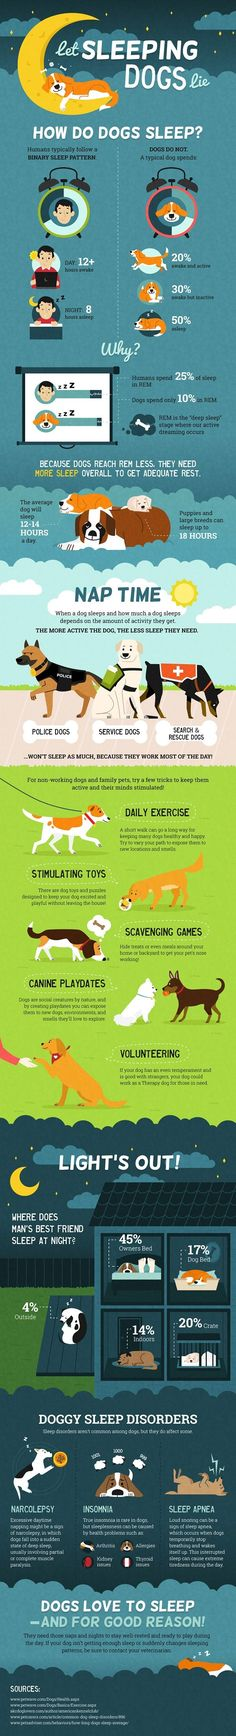 Dog Infographic:  how much sleep do dogs need, let sleeping dogs lie infographic